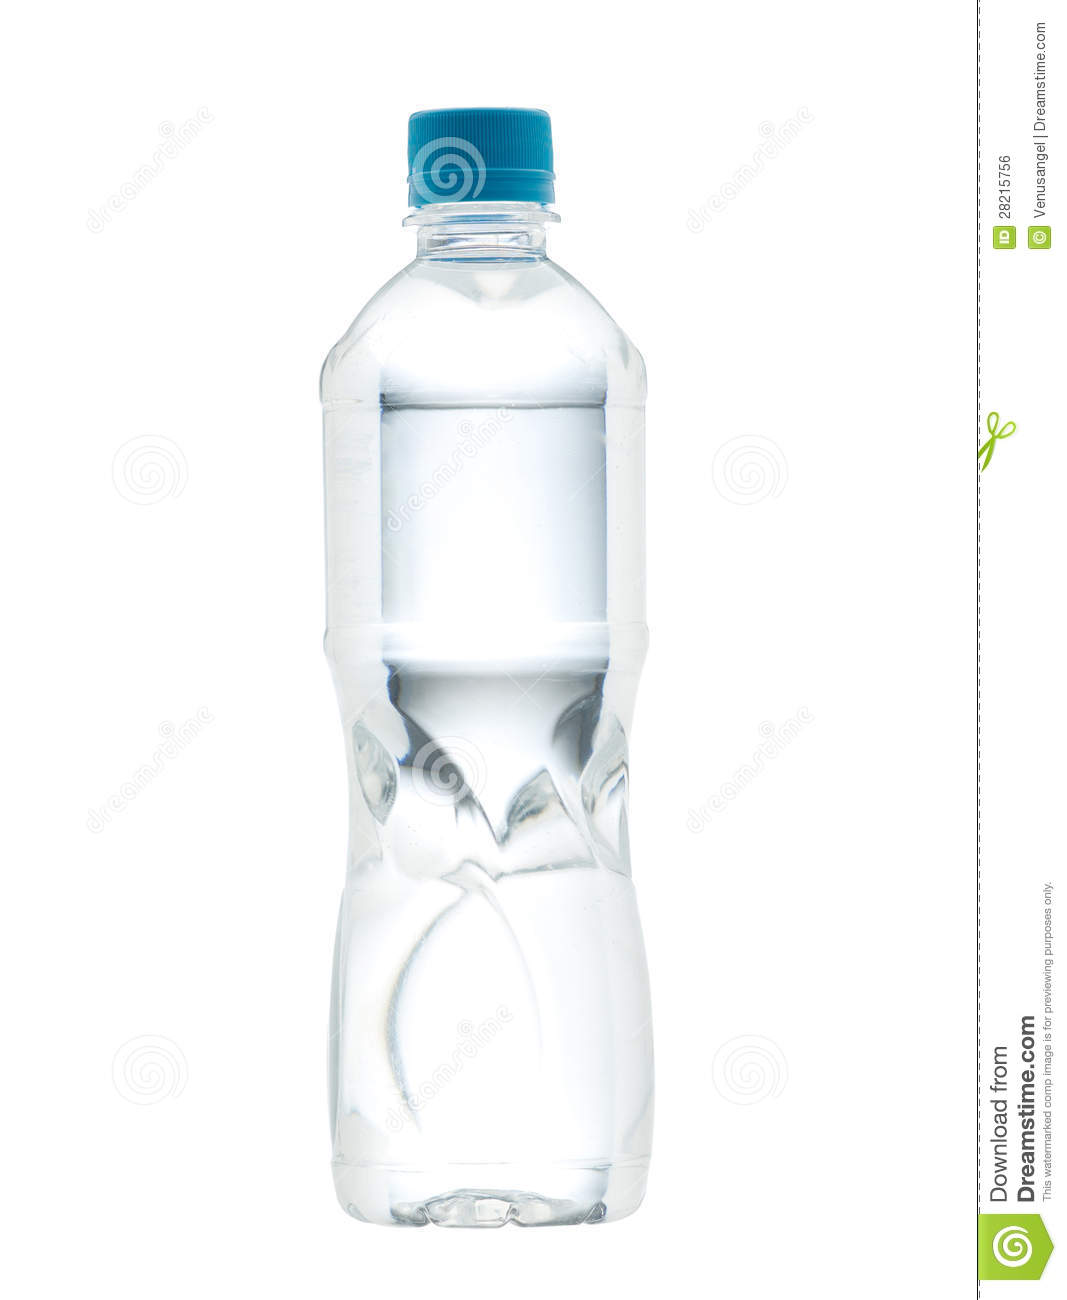 Drinking Water Bottle With Blank Label Royalty Free Stock Image ...